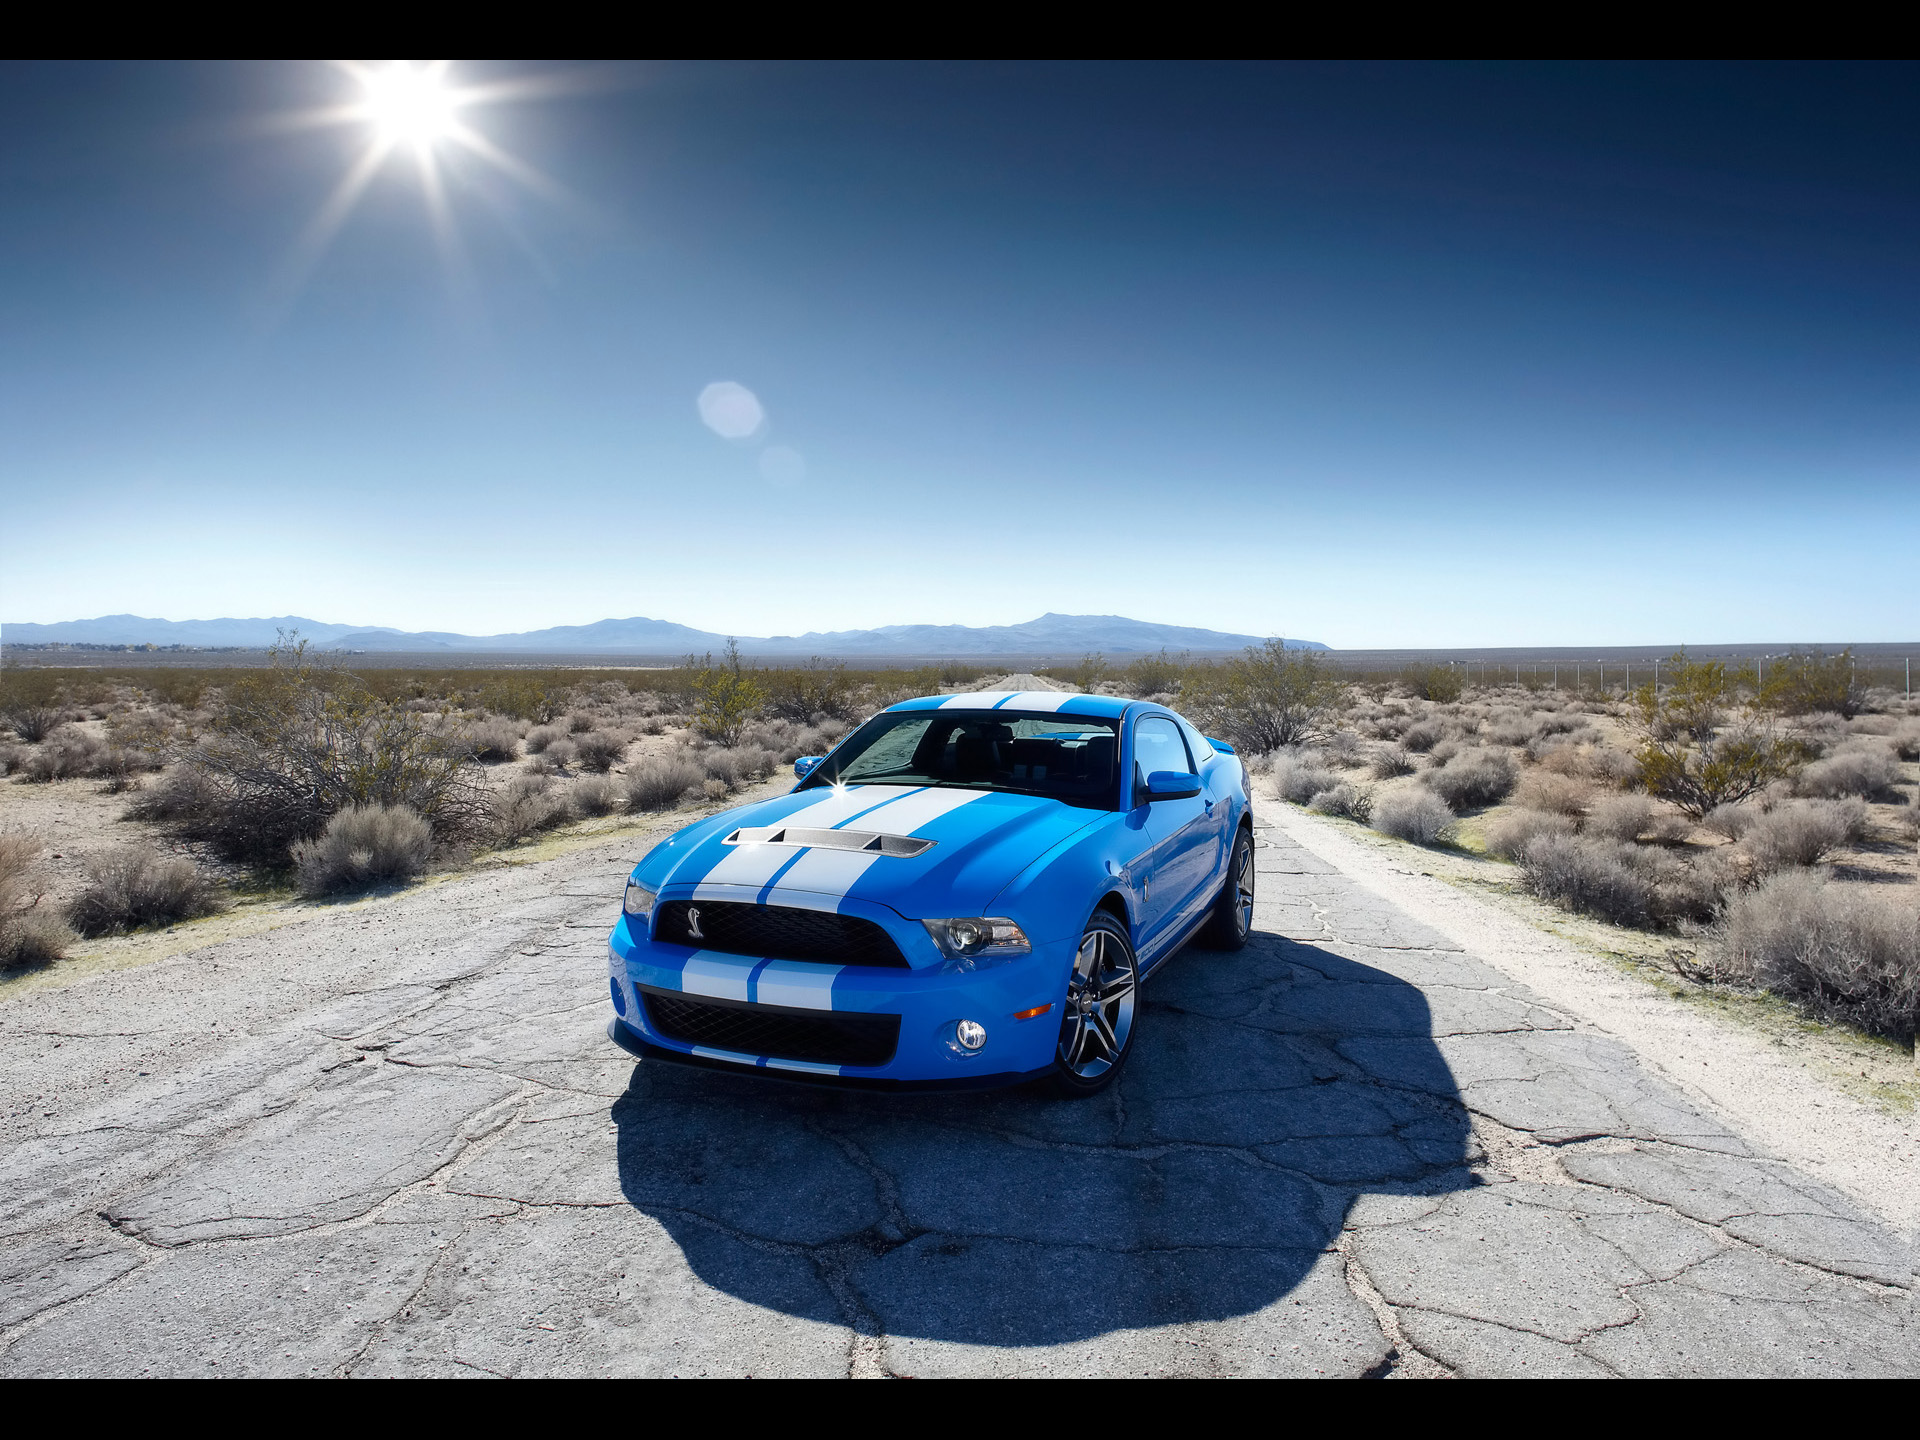 Drive A Shelby Mustang In Las Vegas Shelby Driving